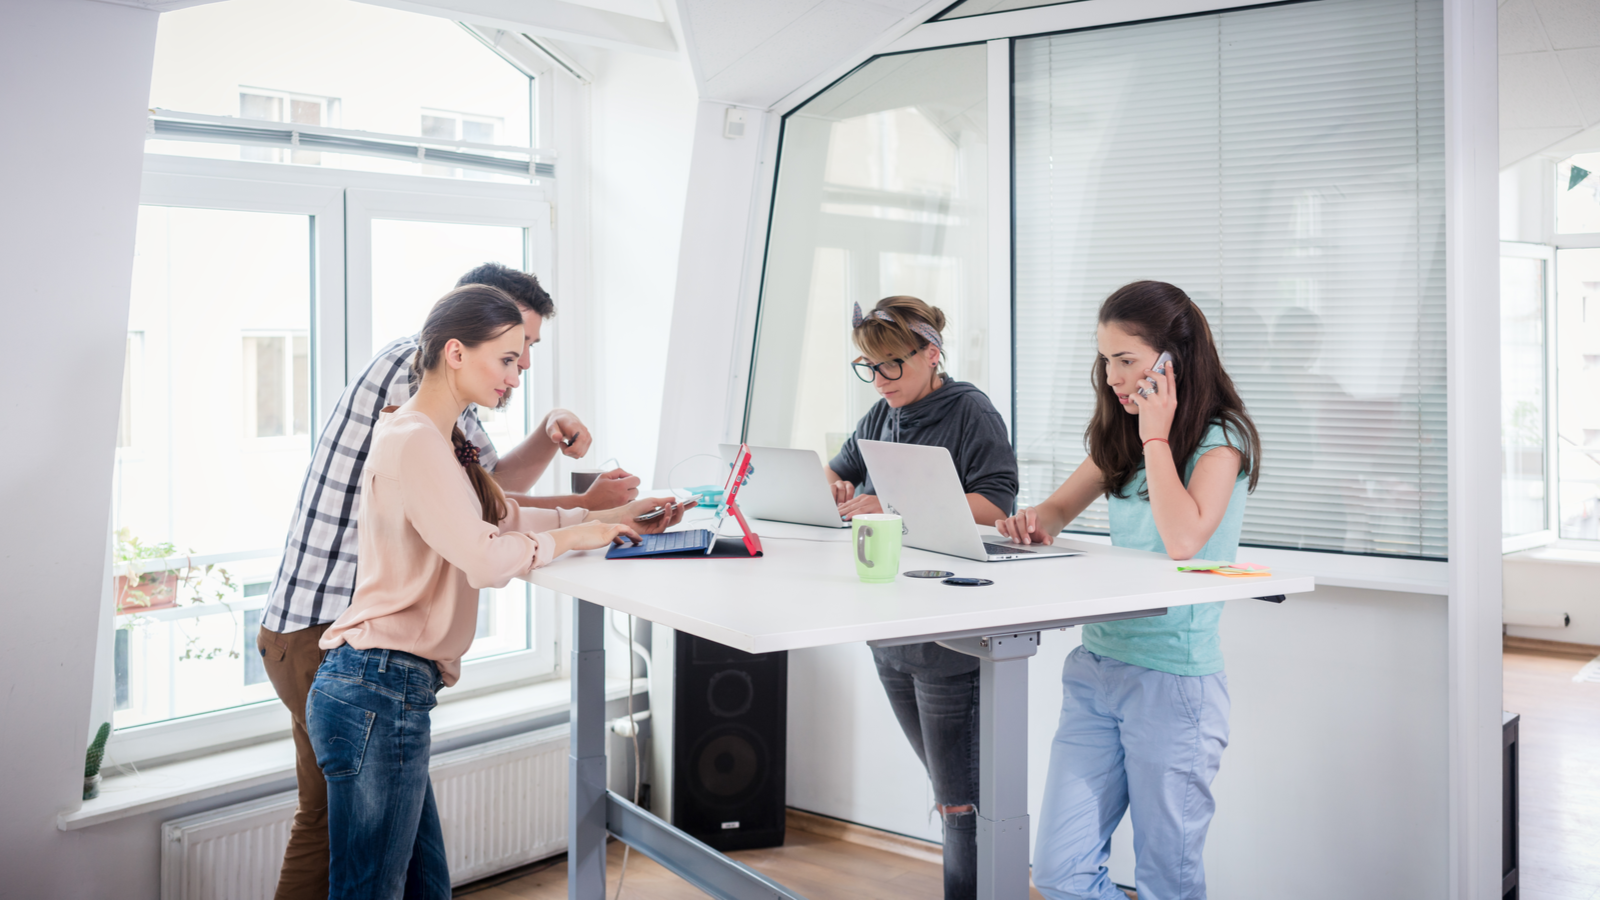 Busy coworkers using mobile technology while sharing a standing desk in a modern office space